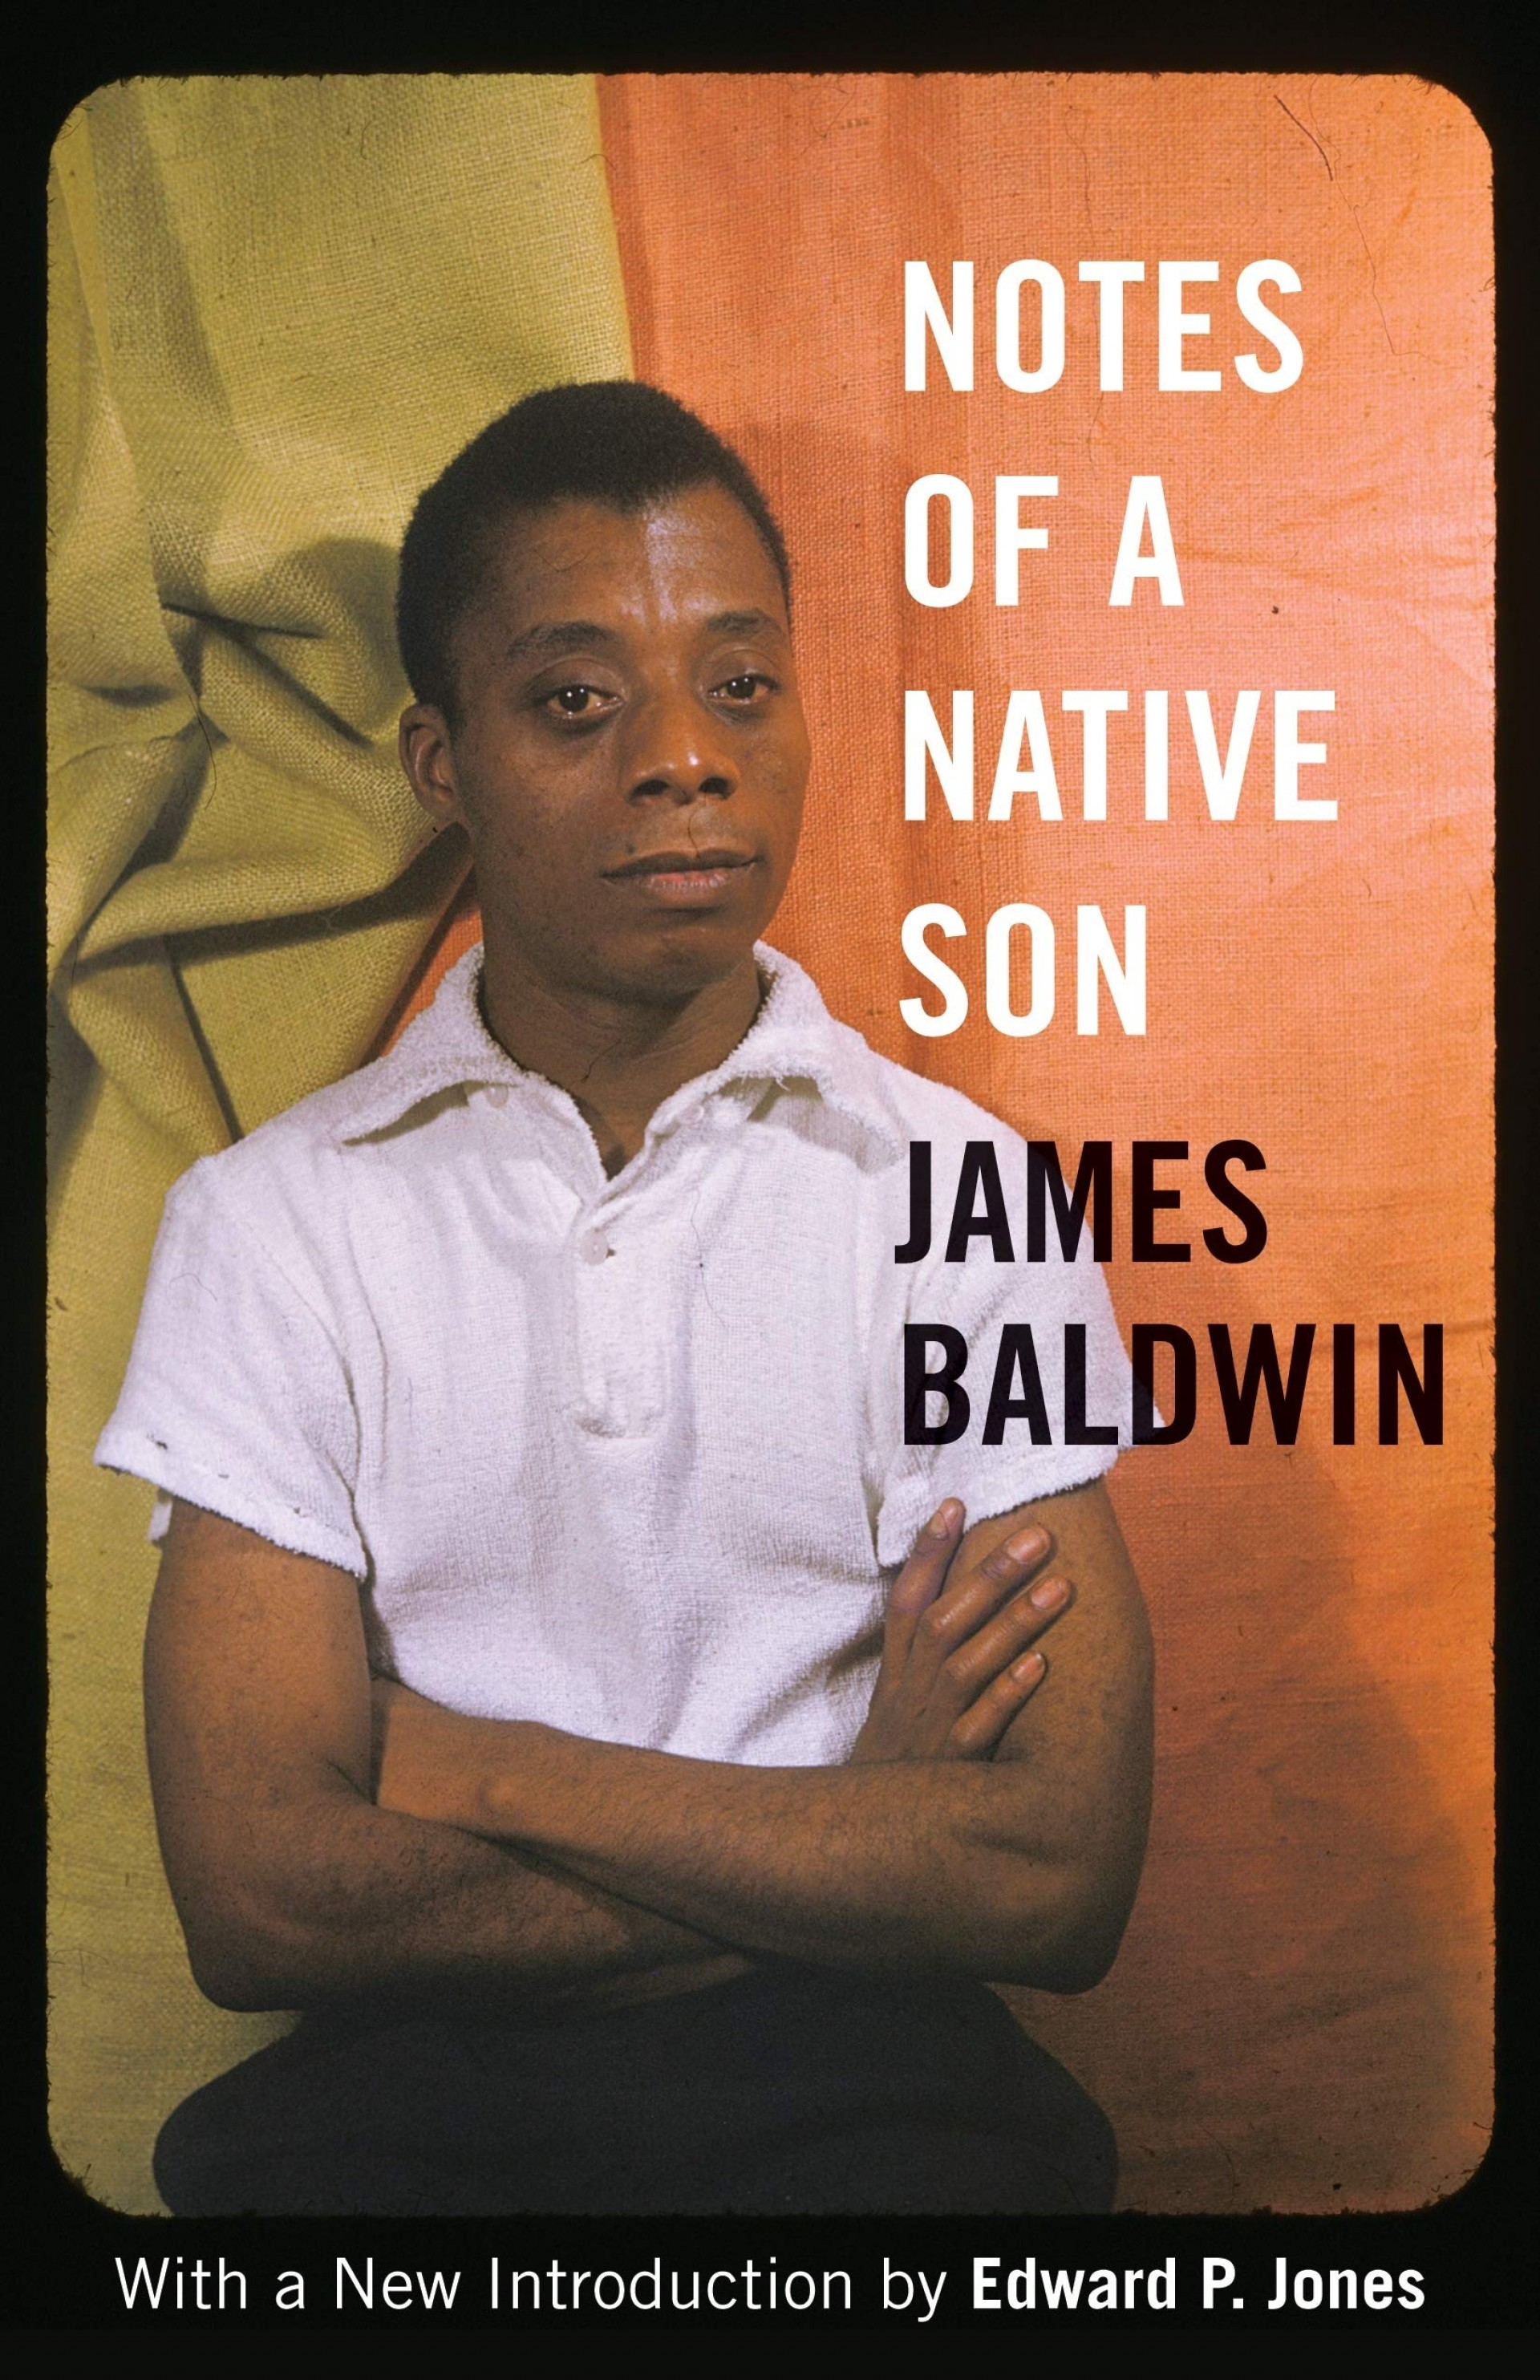 014 Essay Example 81exdnt0zvl James Baldwin Collected Wondrous Essays Table Of Contents Ebook Google Books 1920